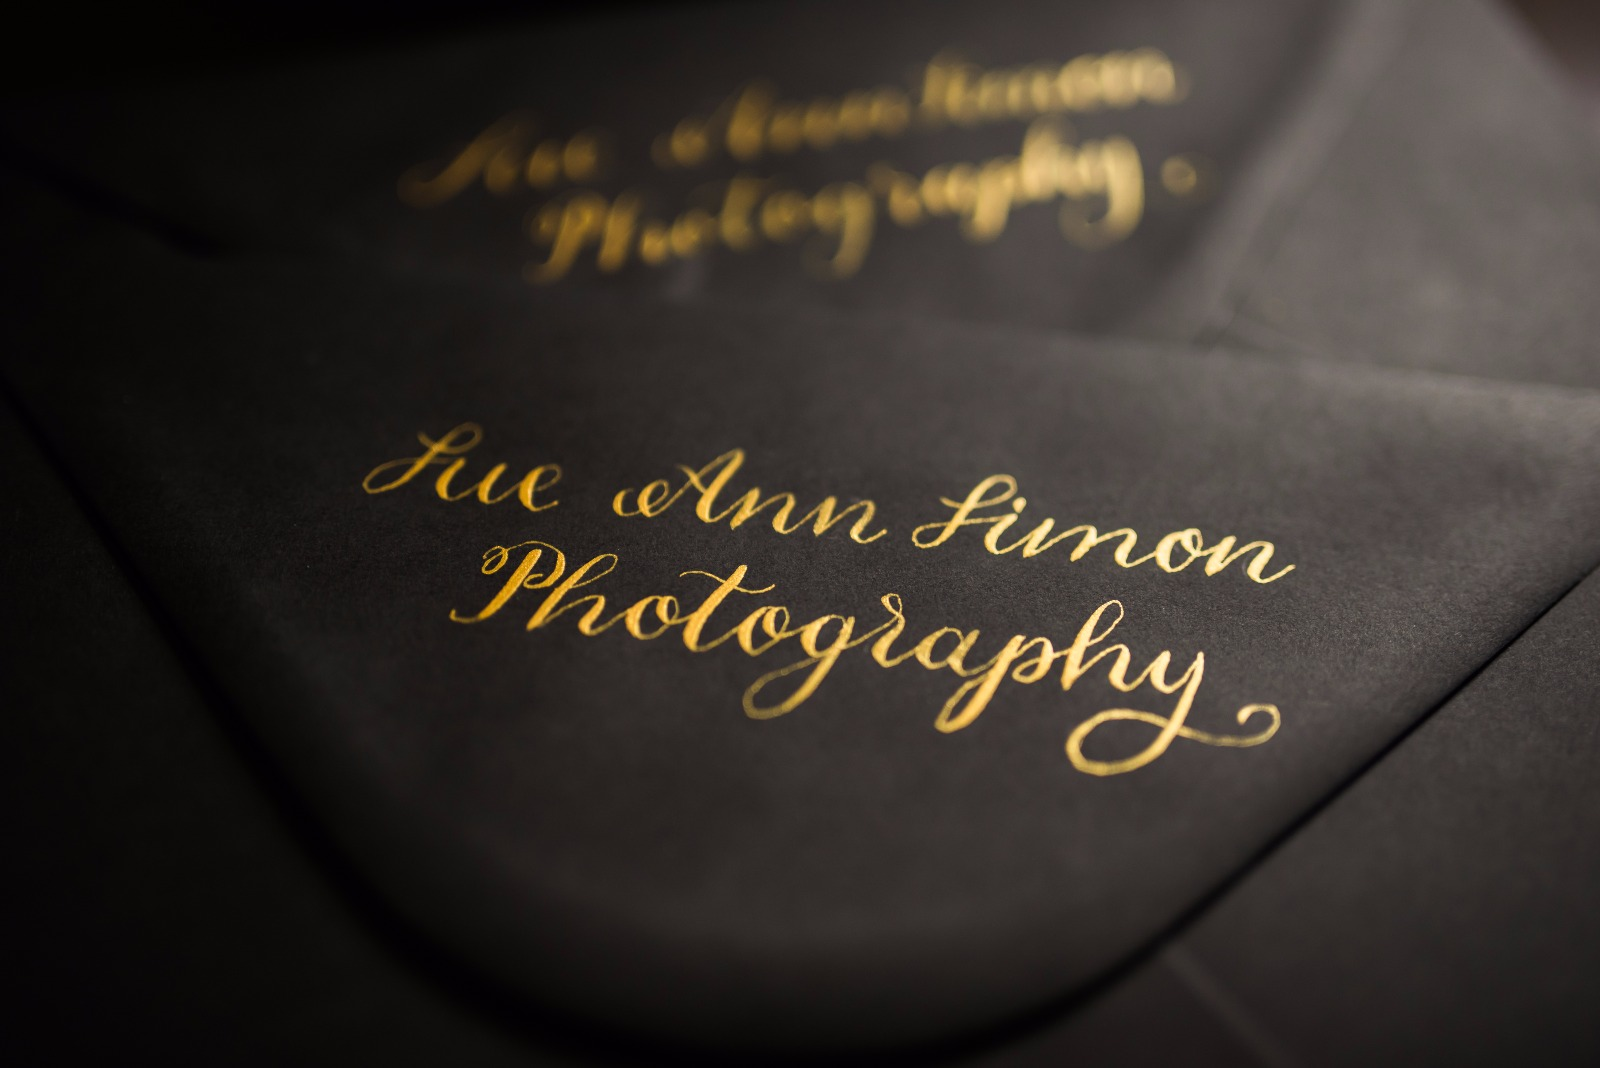 This calligraphy was created using my Finetec palette on matt black envelopes.